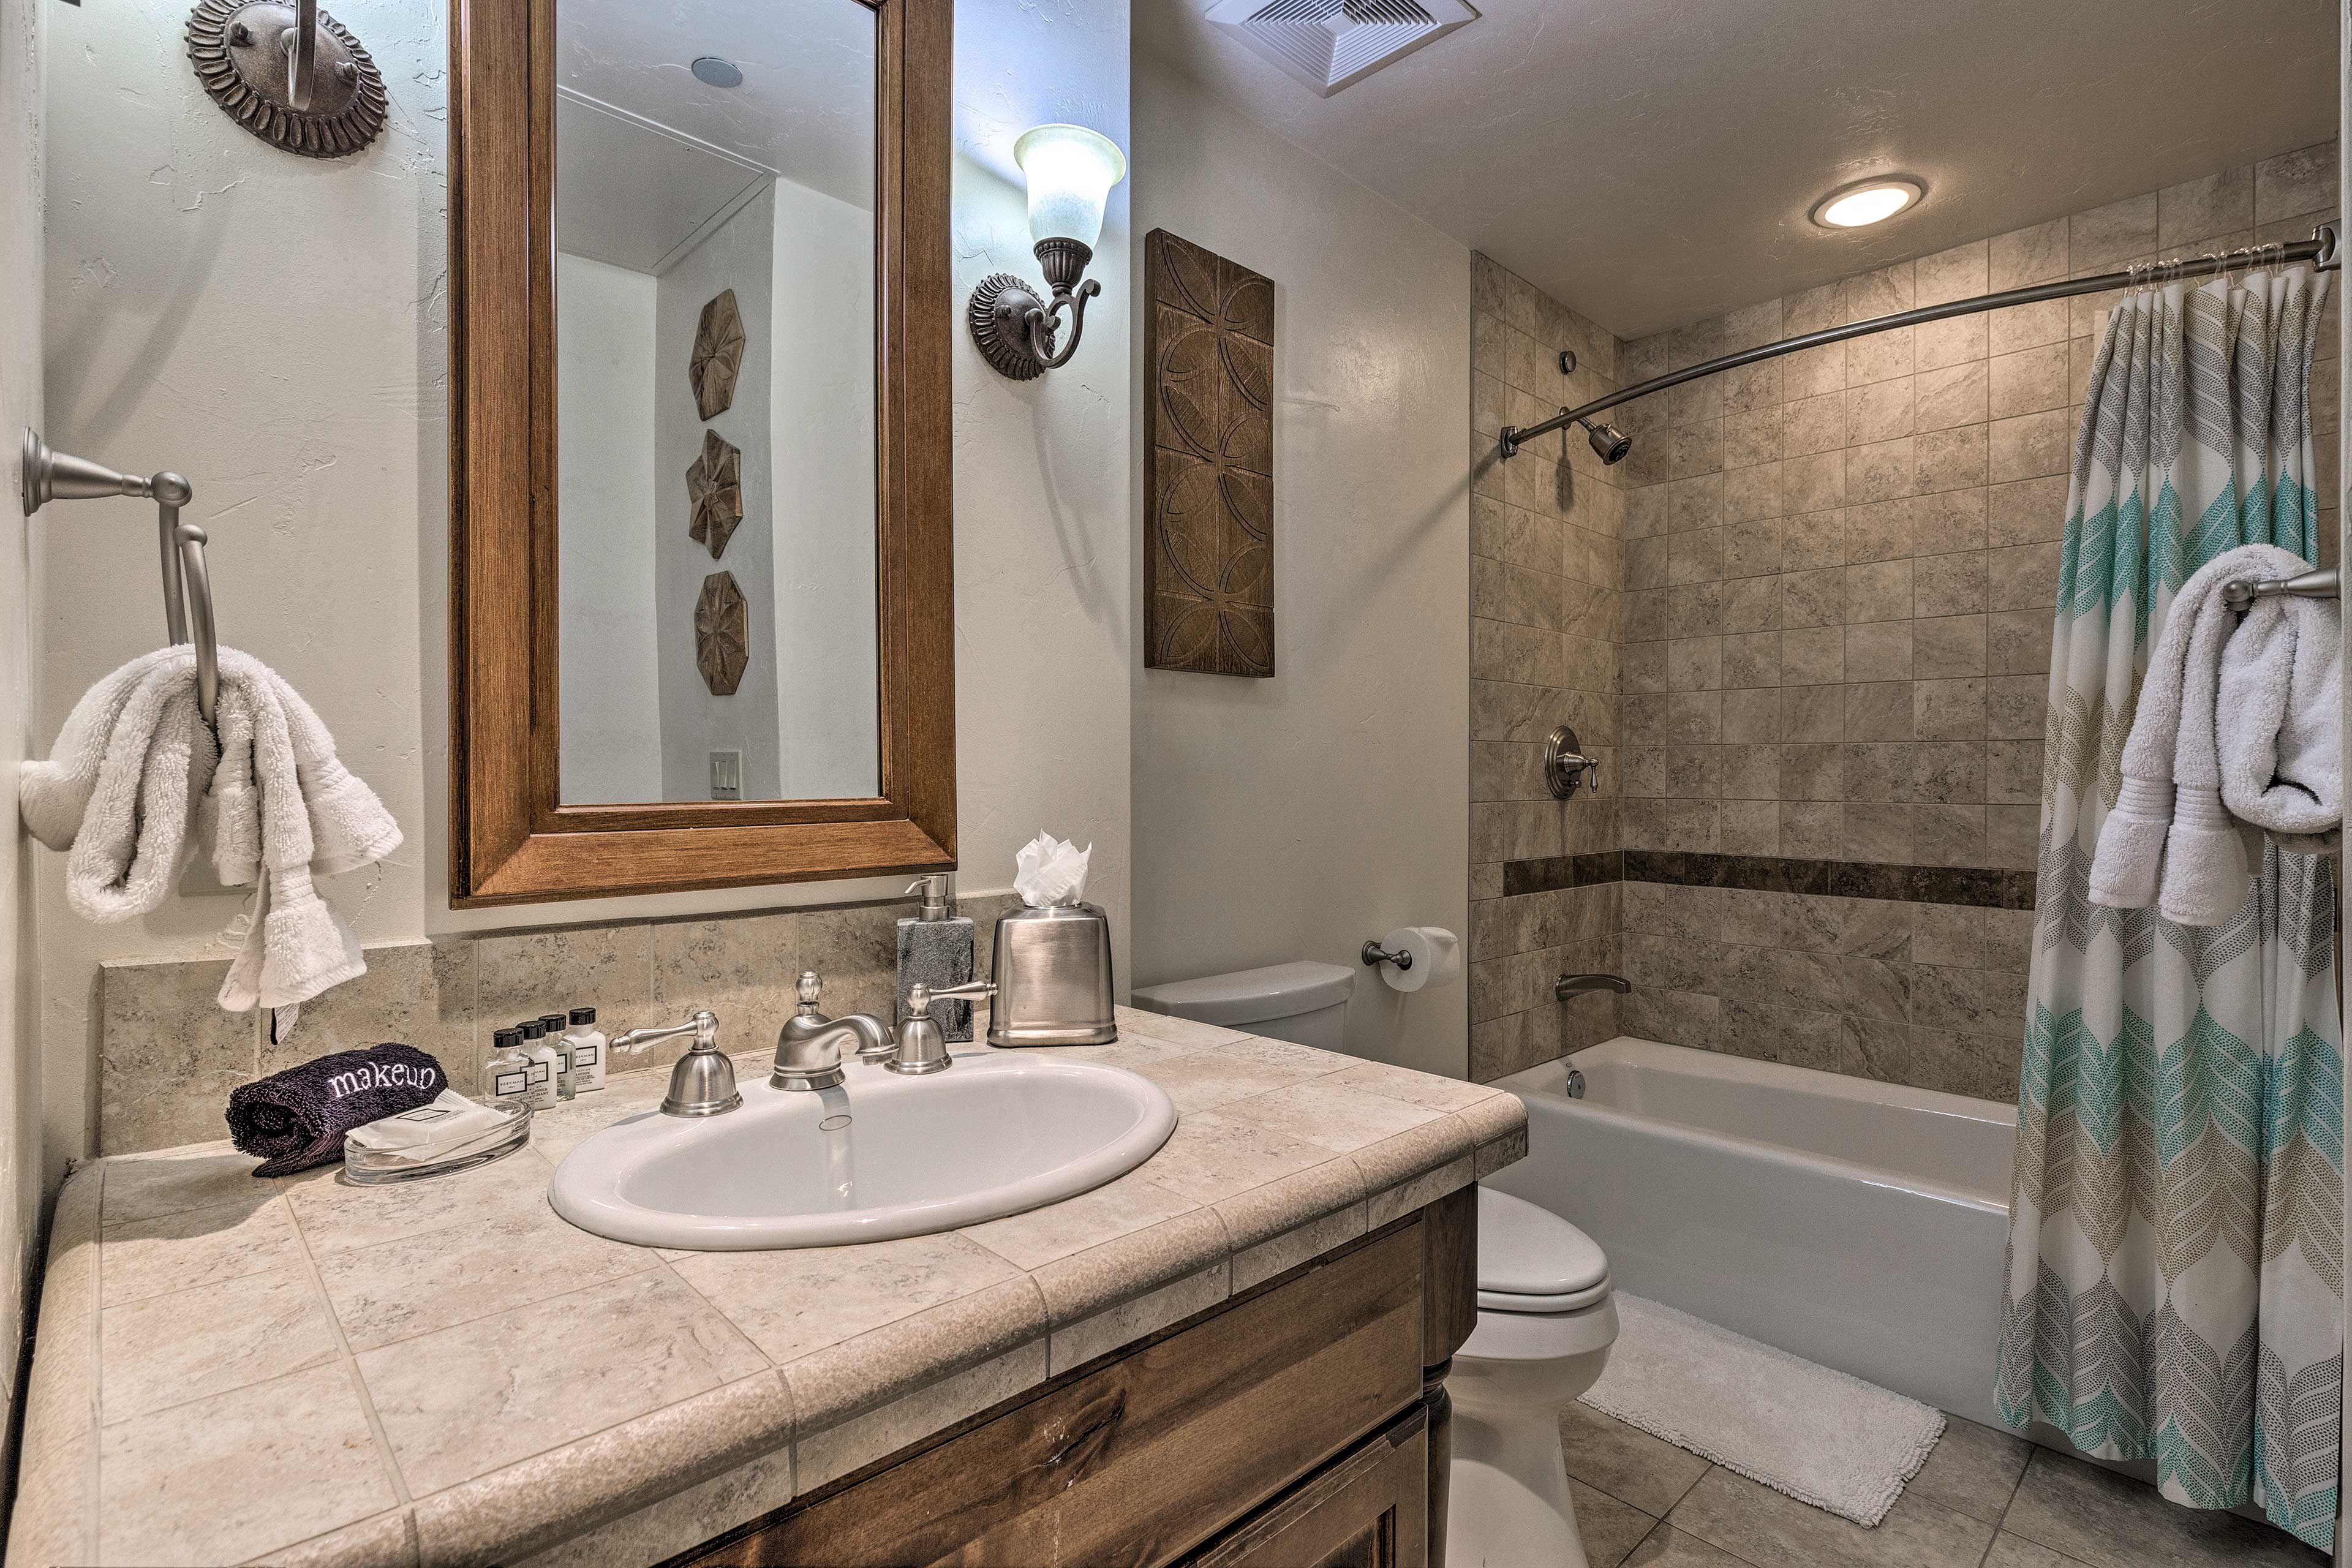 Stocked with fresh towels, the 3 bathrooms provide guests with privacy & comfort